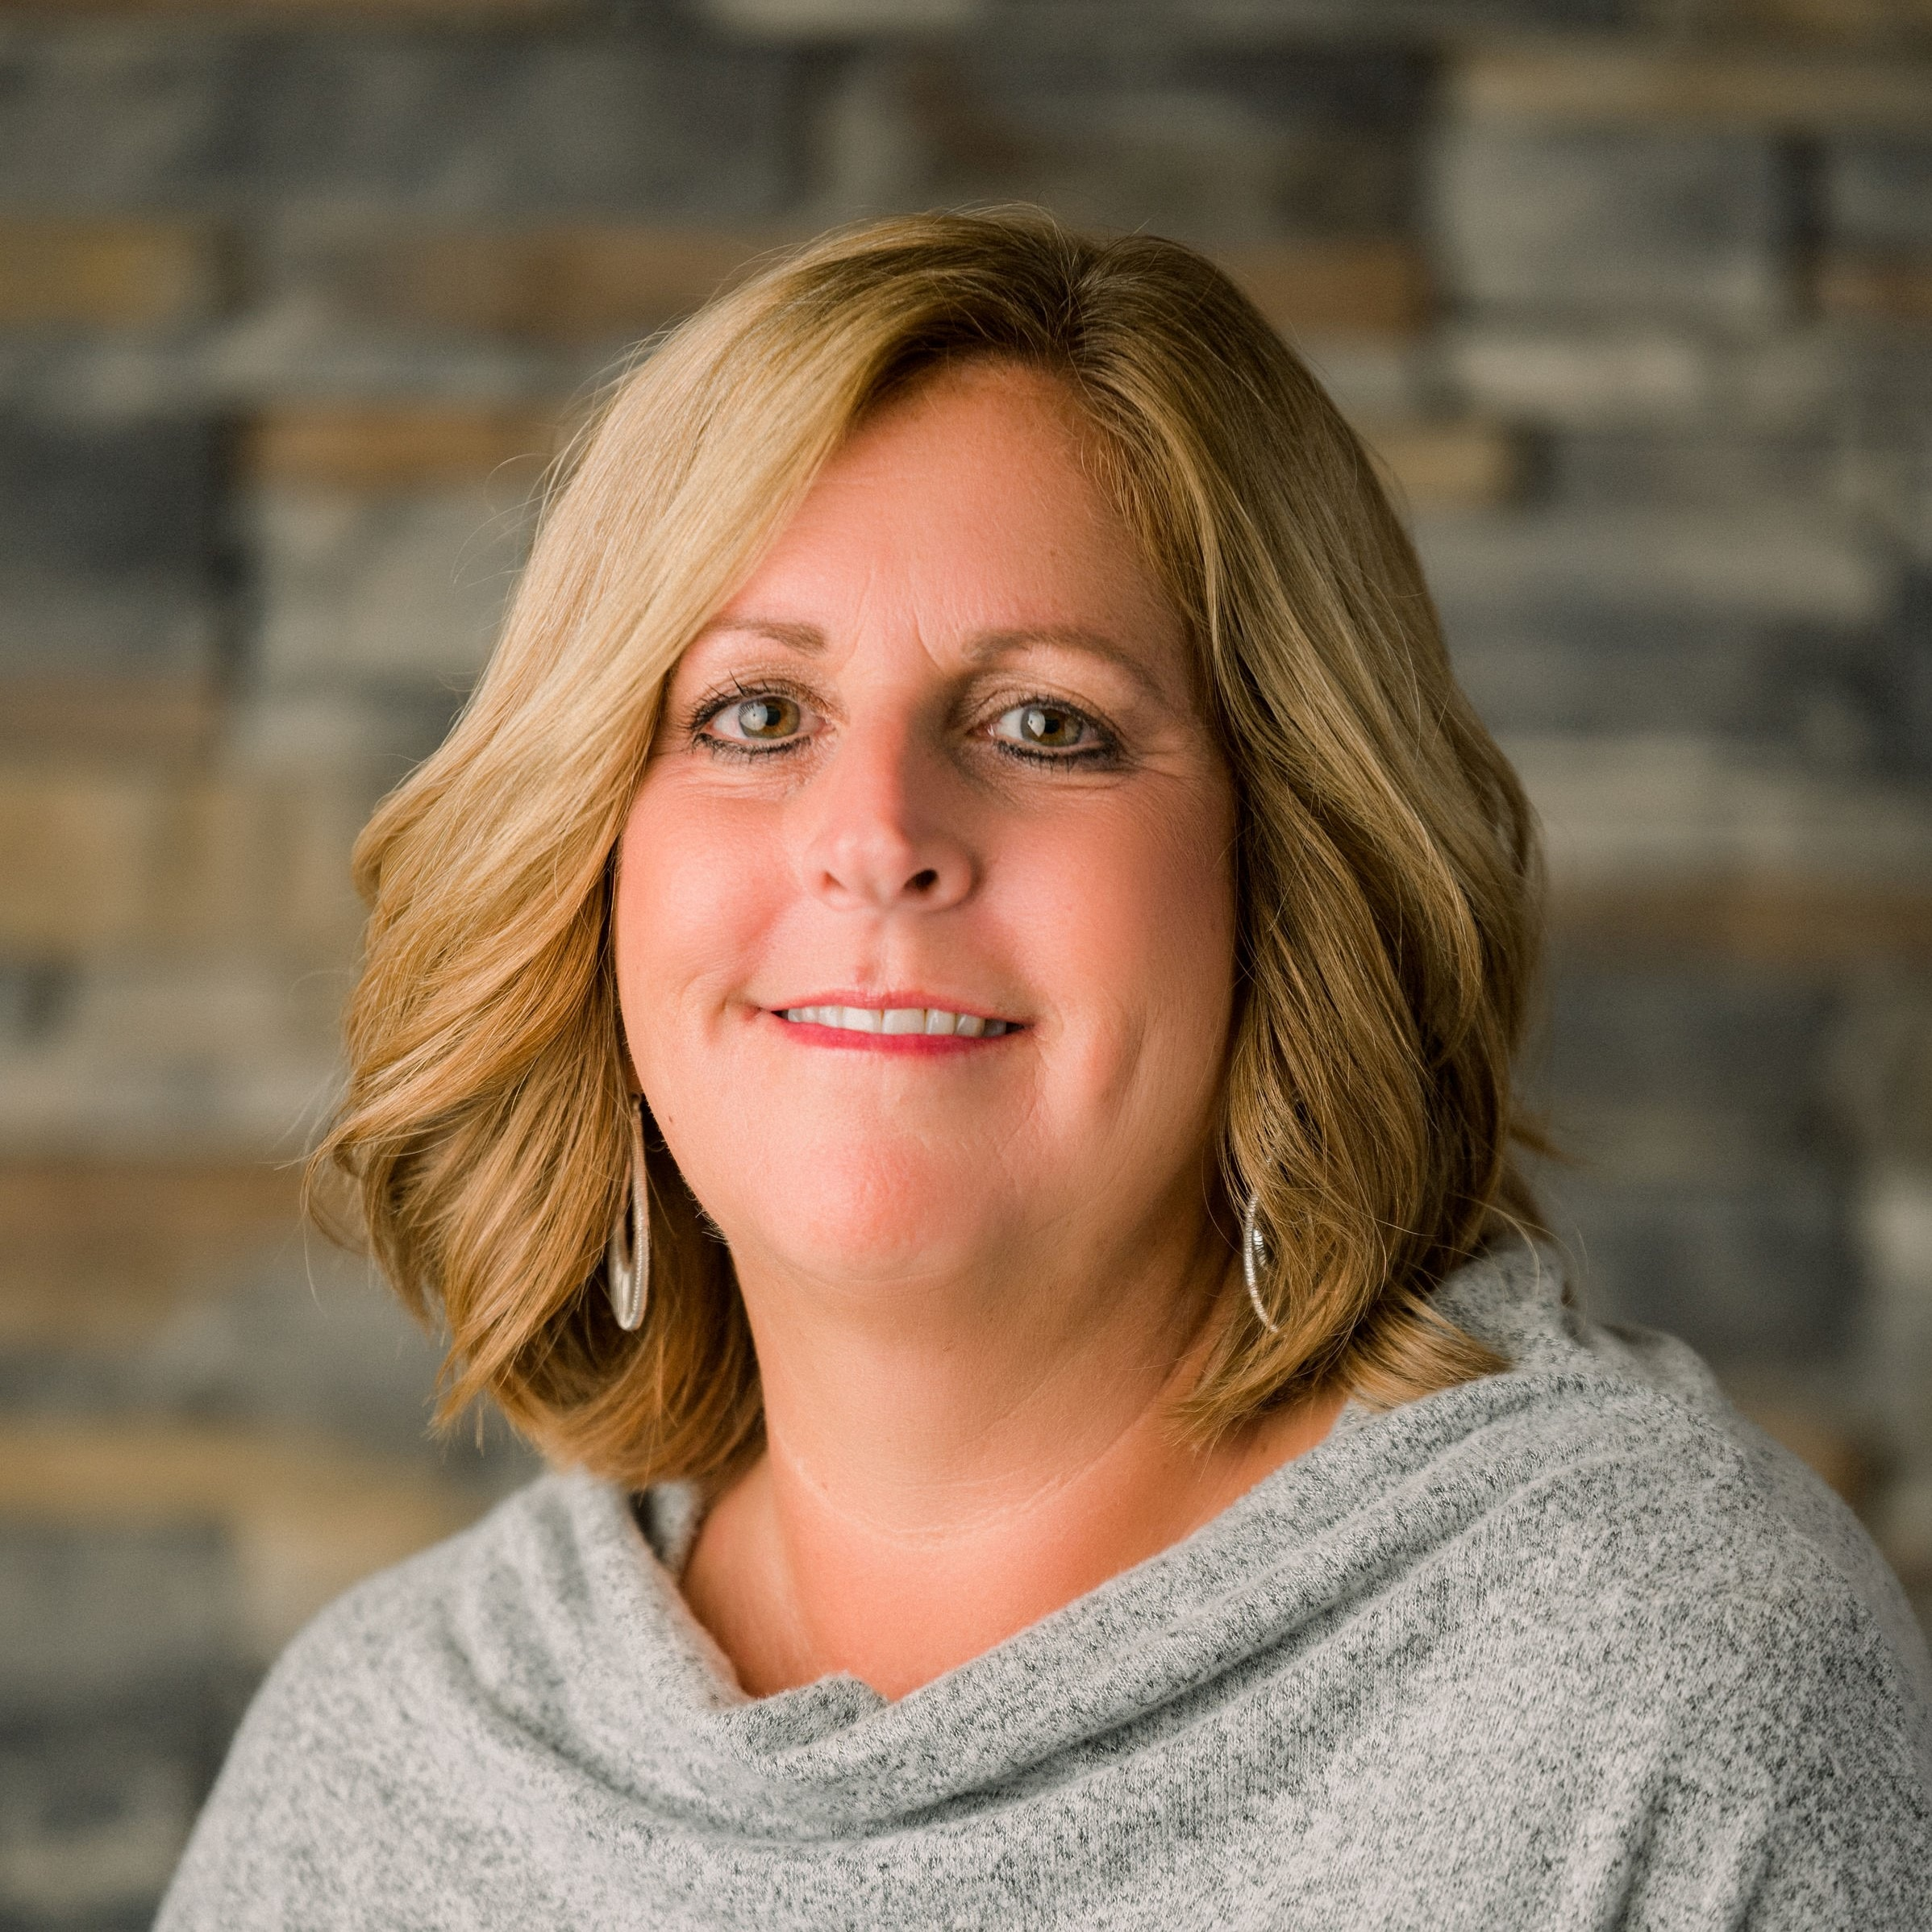 Tami K. of Orthodontic Specialty Services